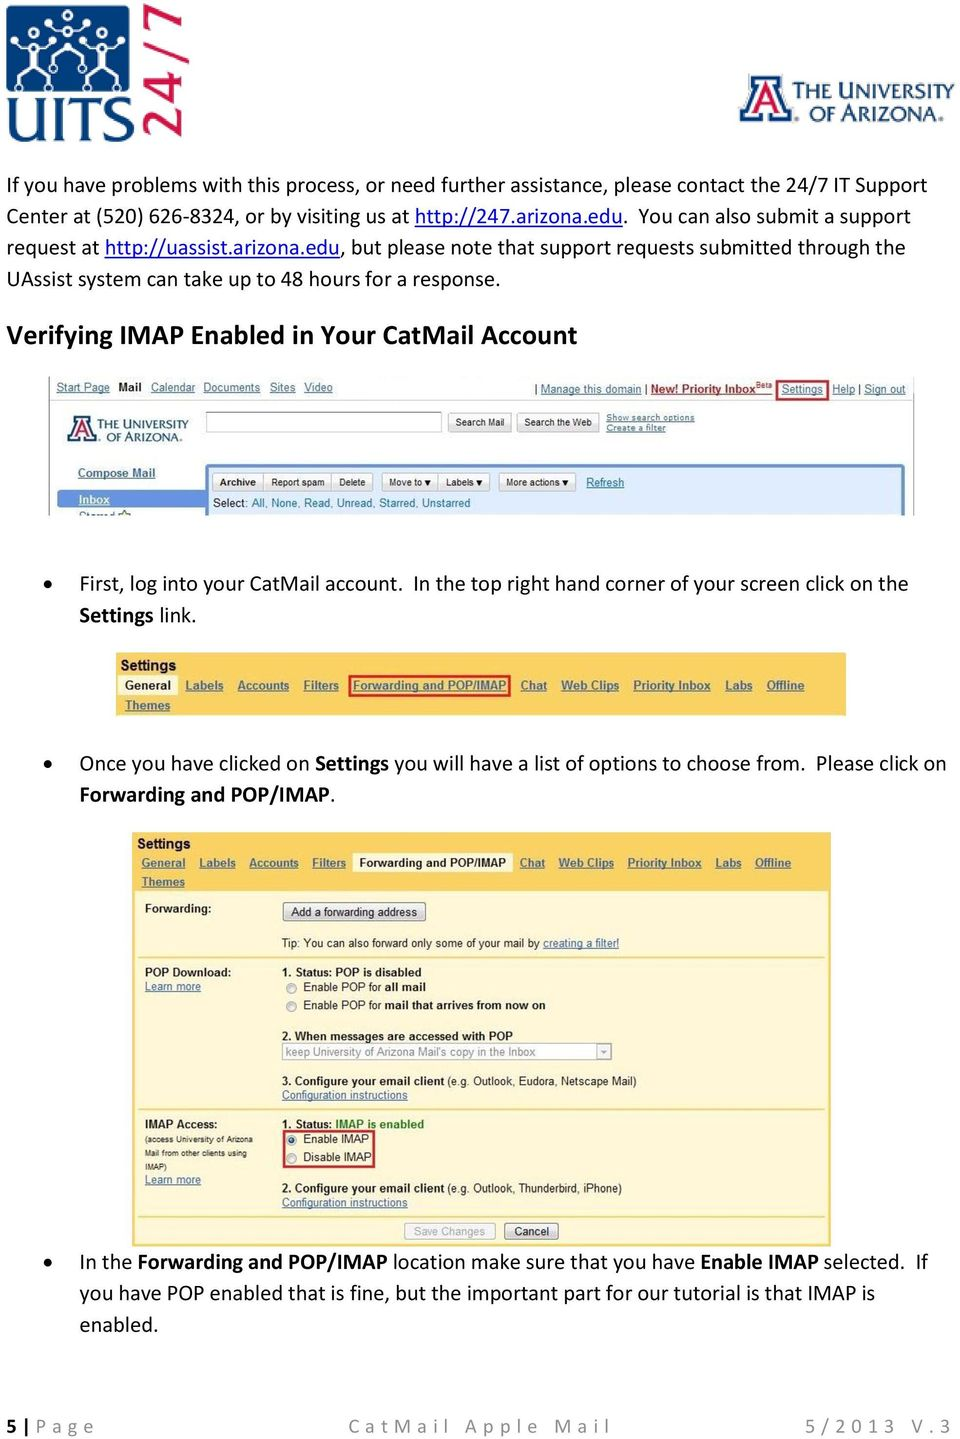 Verifying IMAP Enabled in Your CatMail Account First, log into your CatMail account. In the top right hand corner of your screen click on the Settings link.